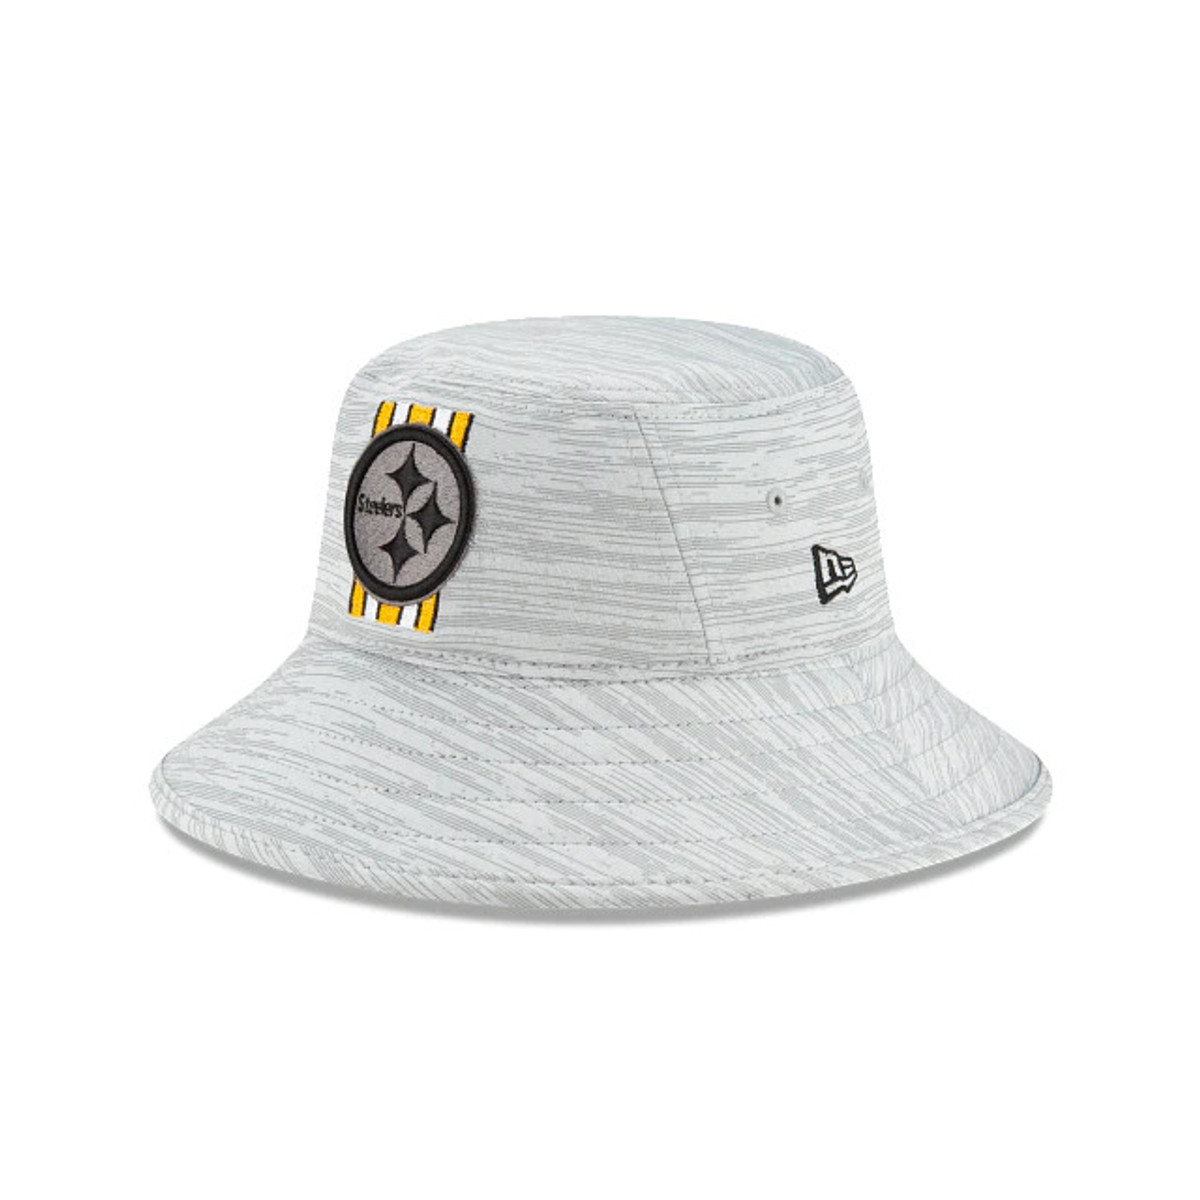 PITTSBURGH STEELERS OFFICIAL NFL TRAINING STRETCH BUCKET